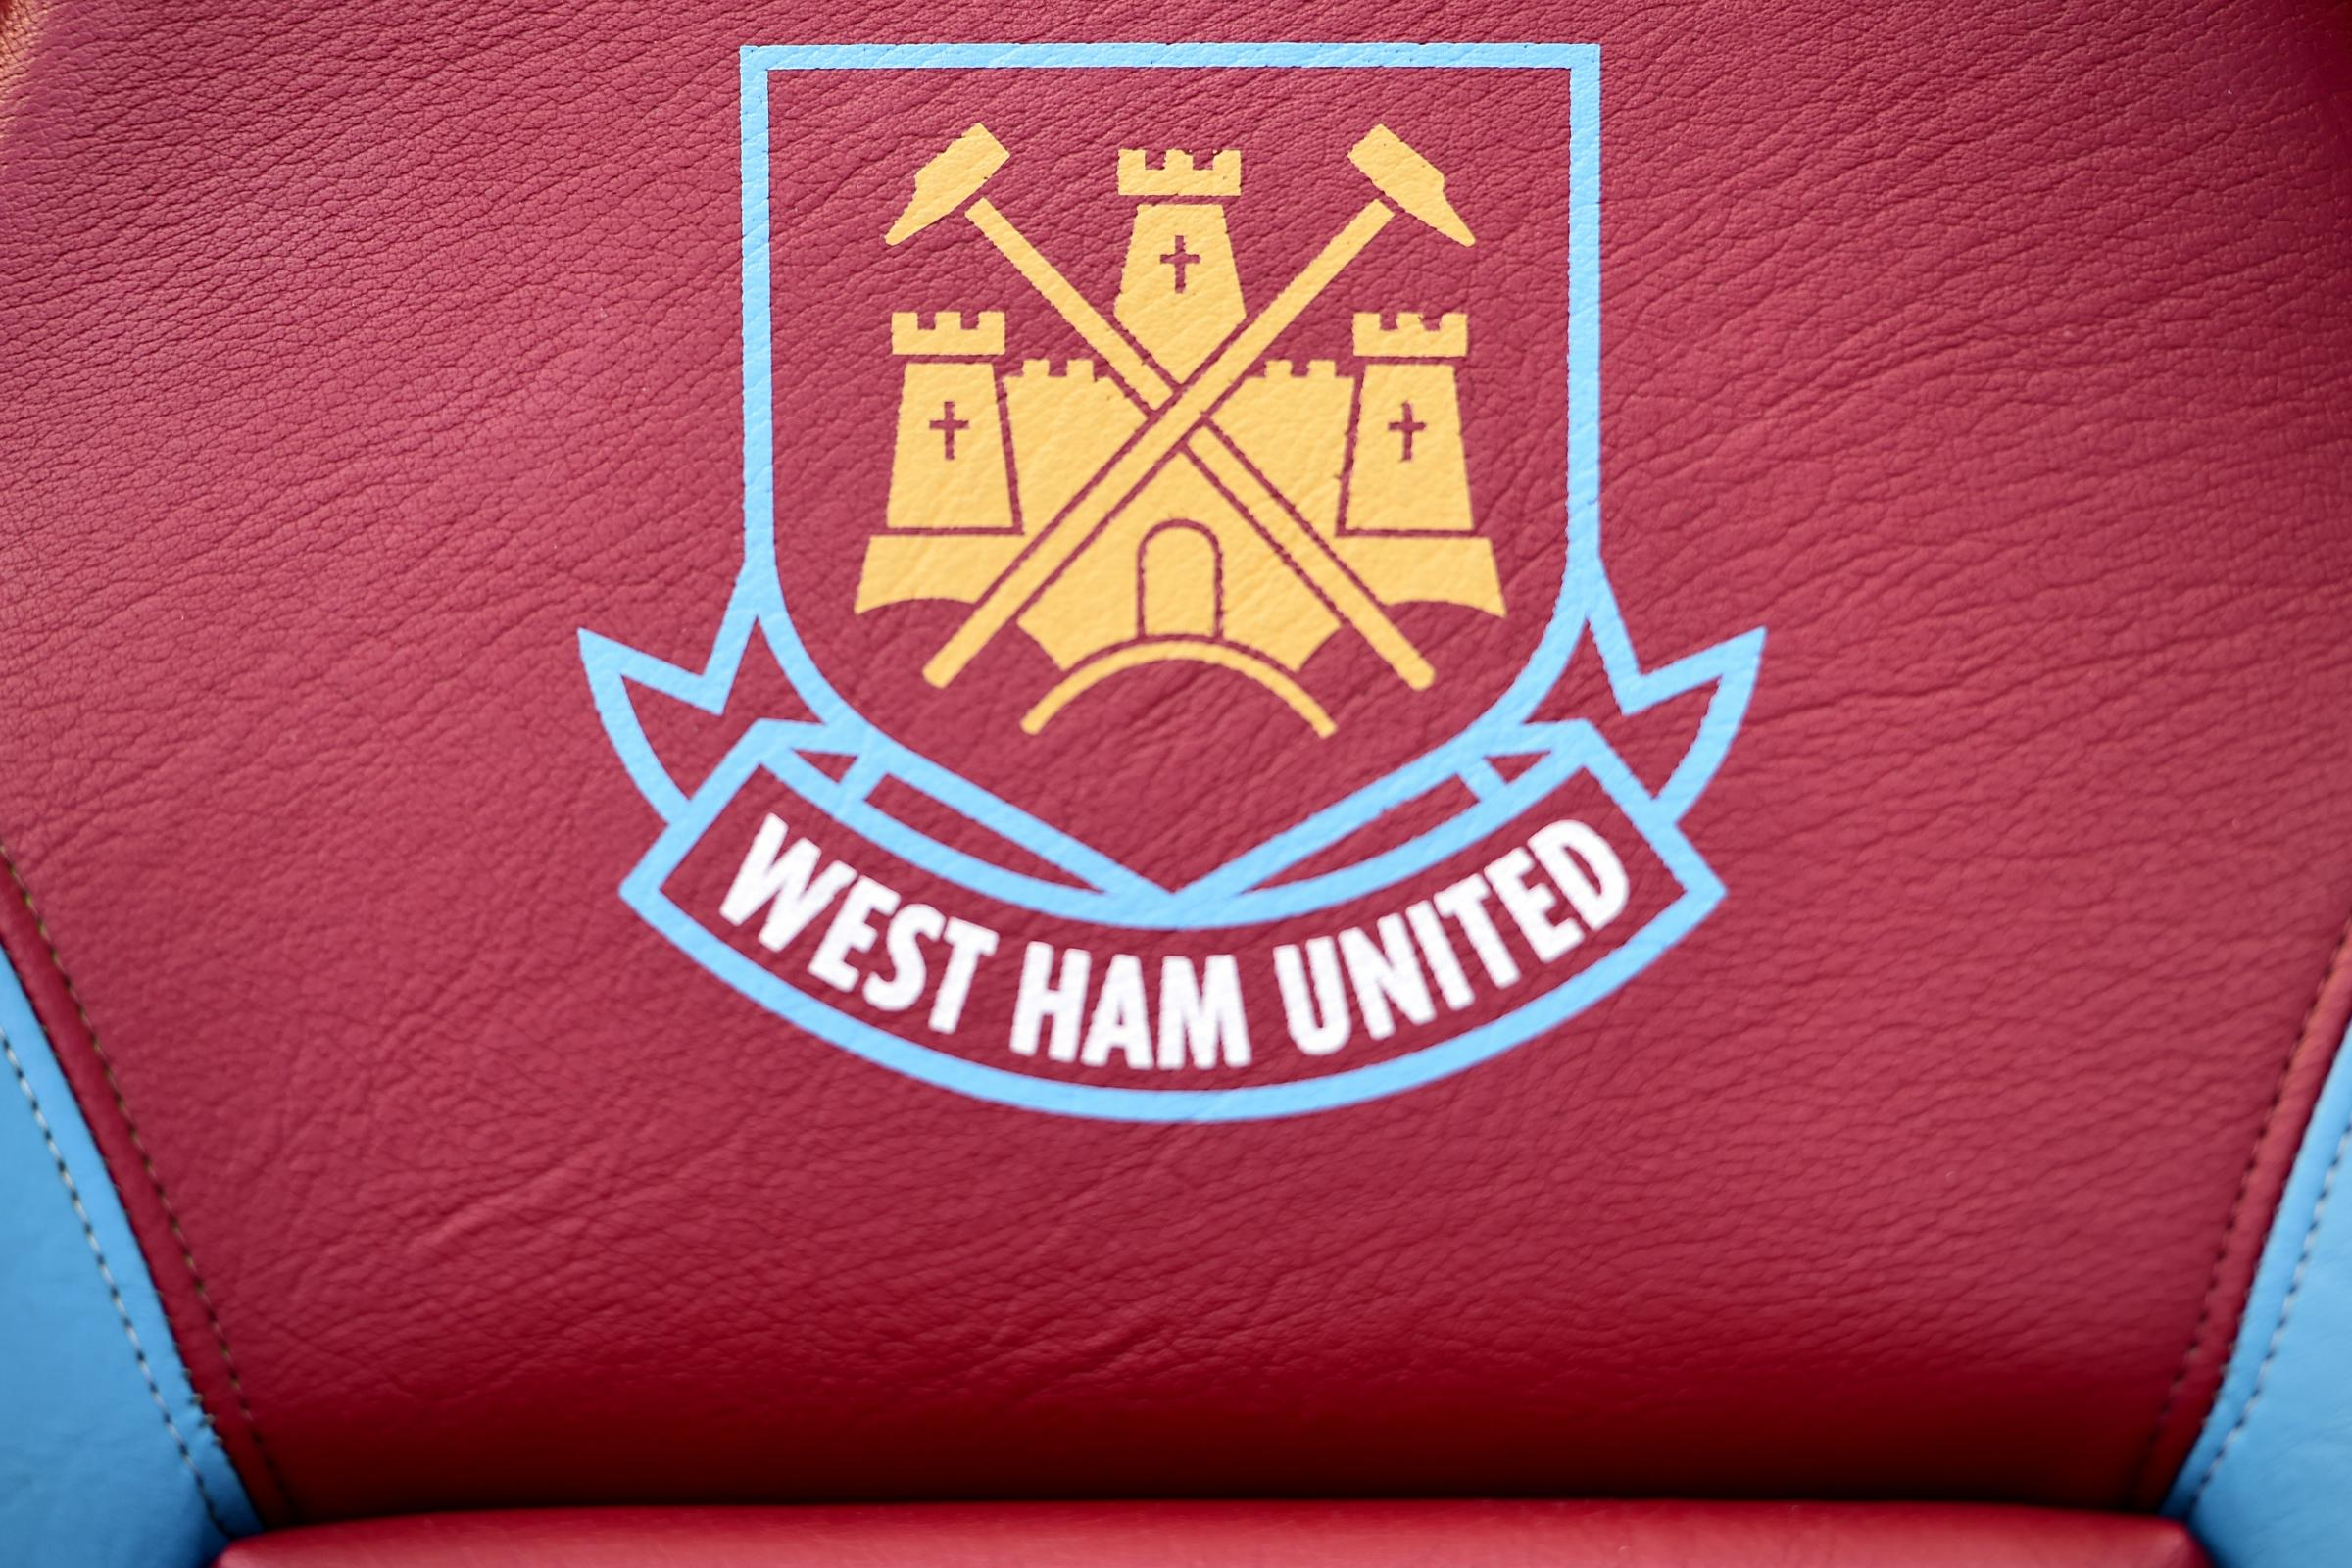 West Ham have vowed to ban supporters seen singing anti-Semitic songs for life